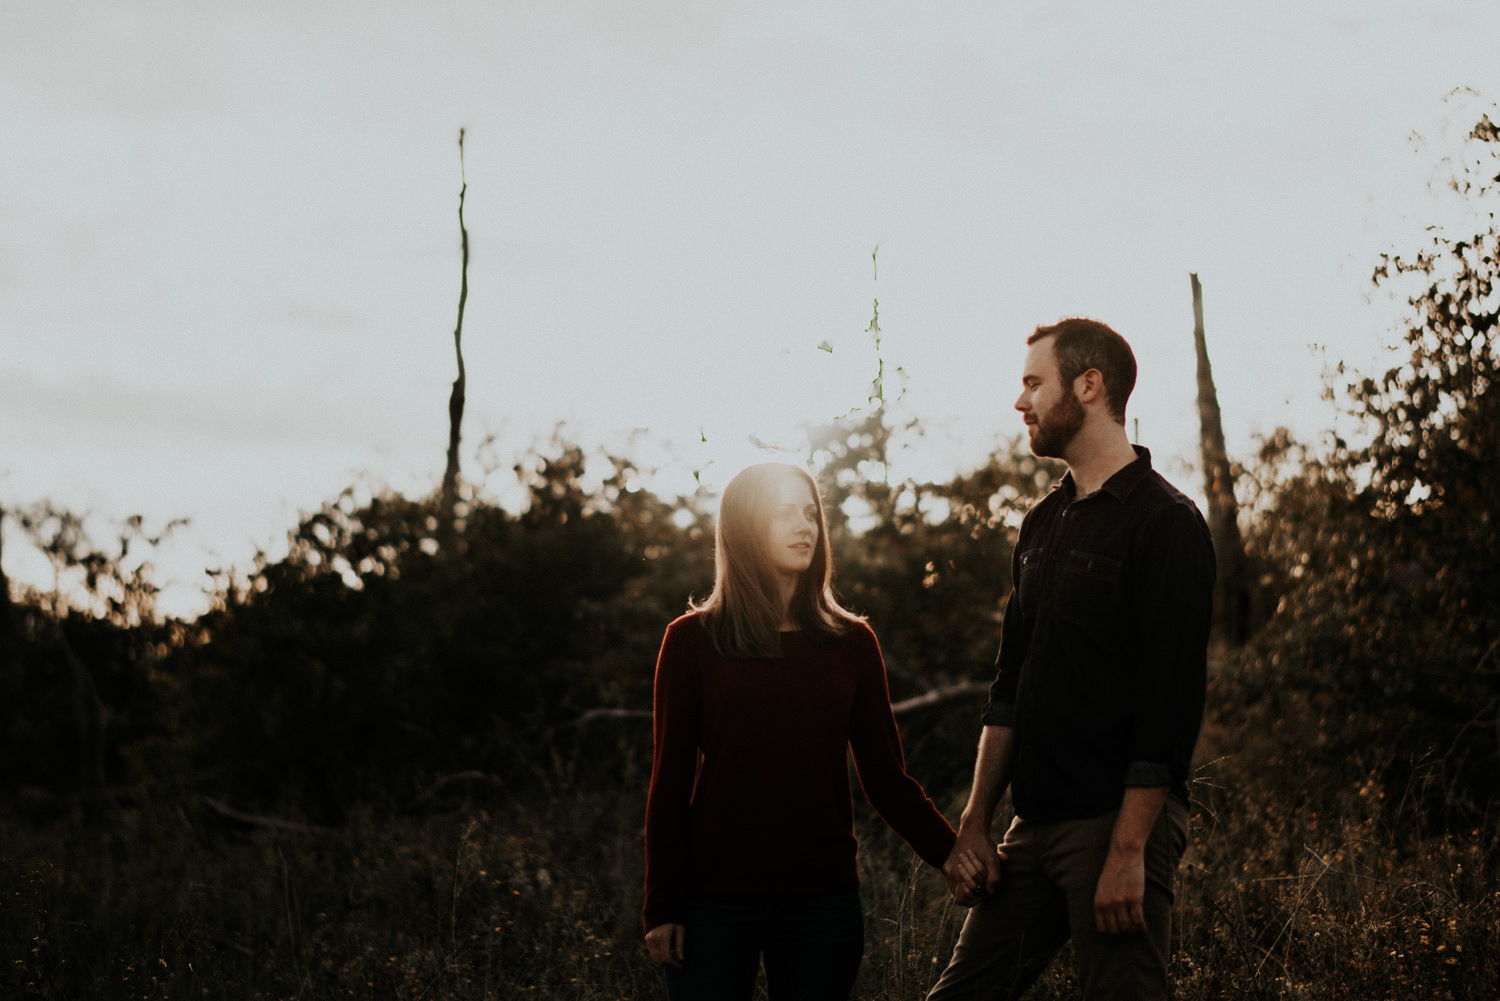 Engagement Session at Sunset in Texas